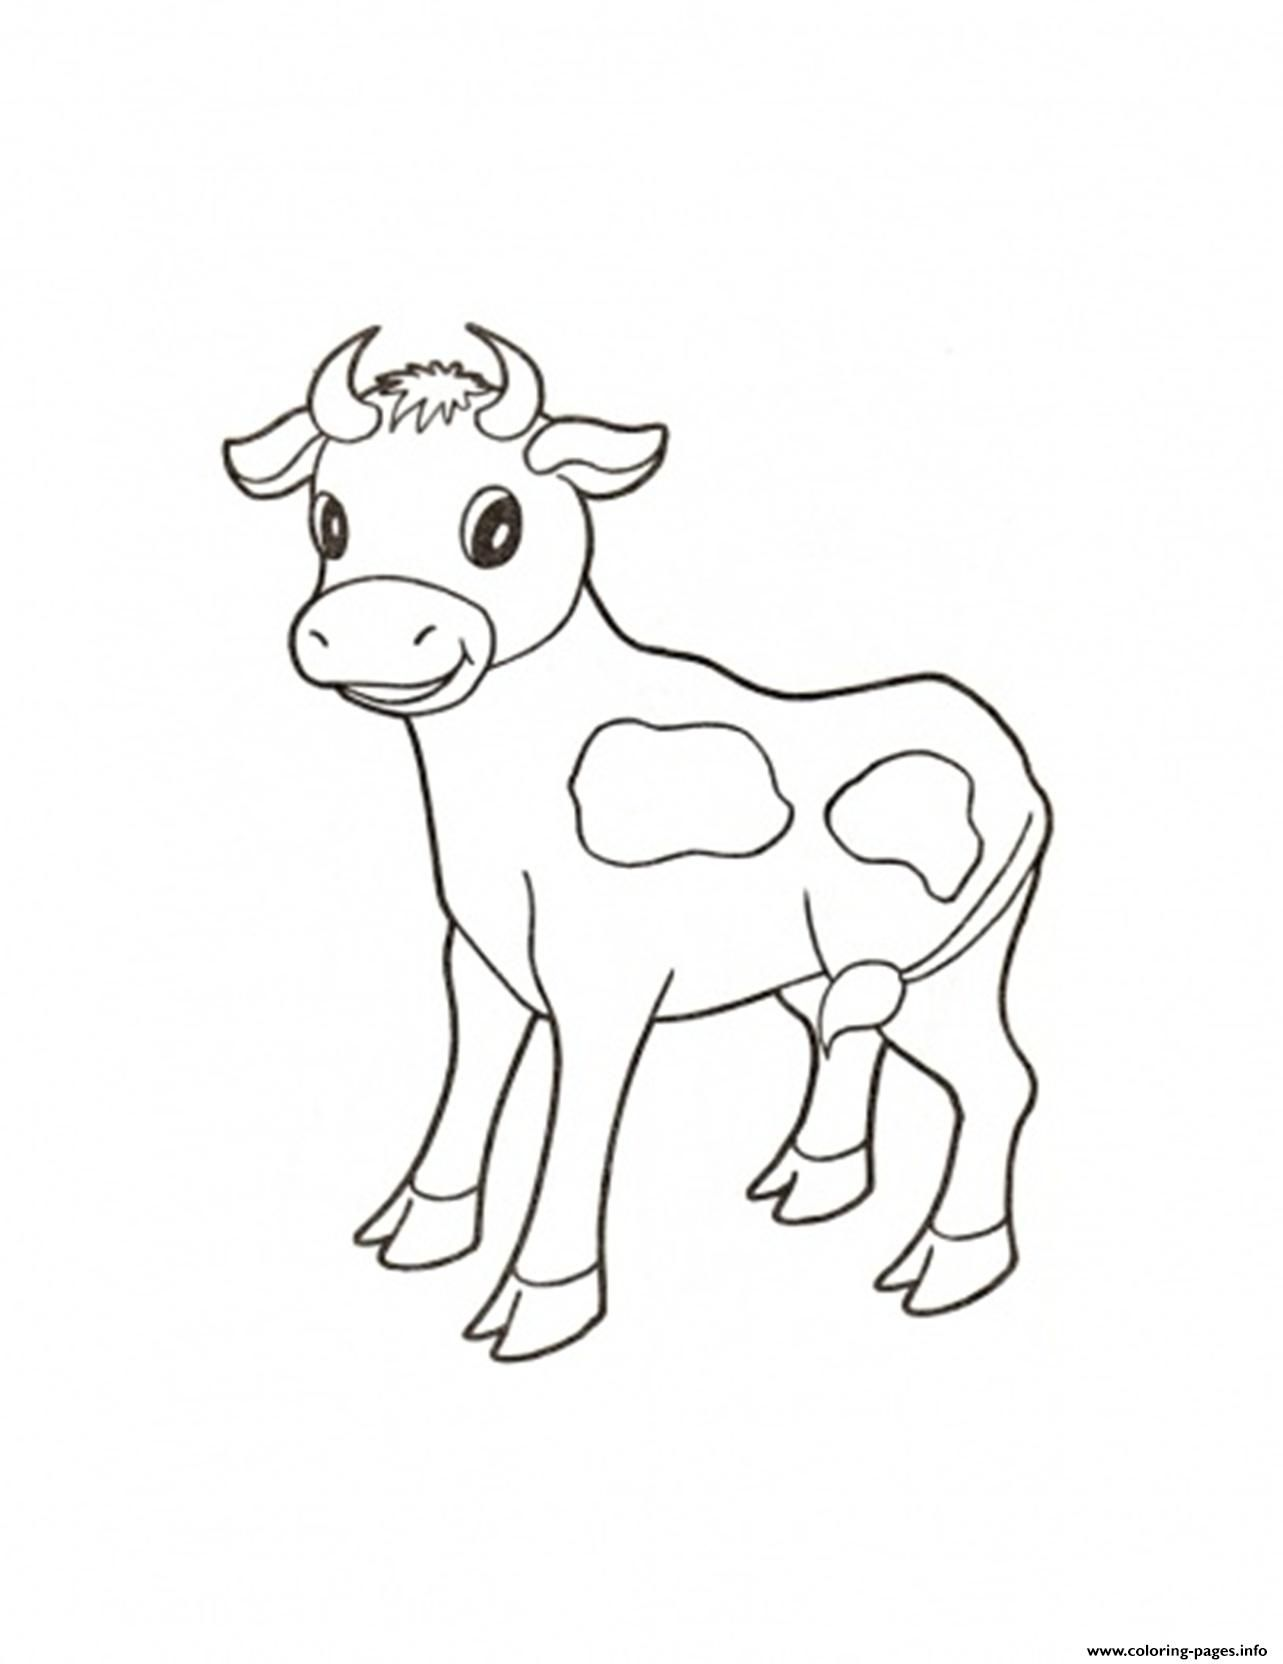 Print Cute Calf Farm Animal S32ee Coloring Pages Tegninger